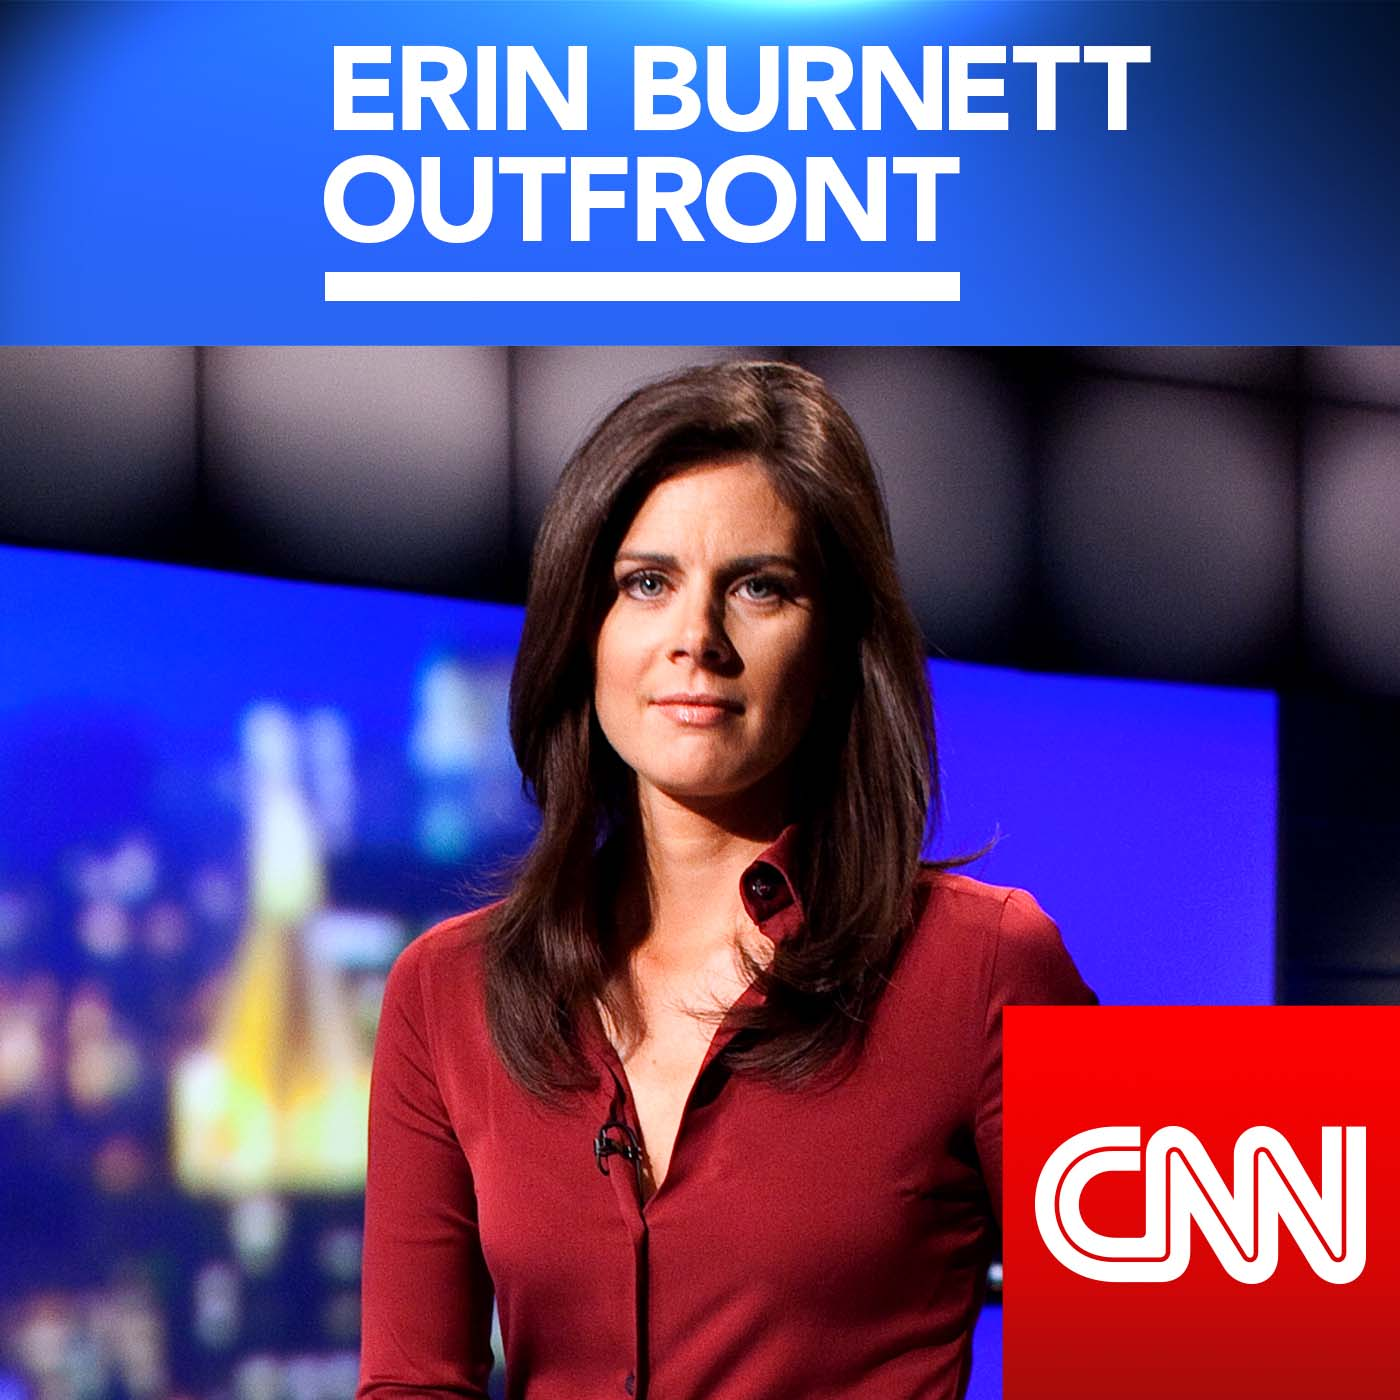 Erin Burnett Hot Bikini Pics, News Host Kissing Scene 20